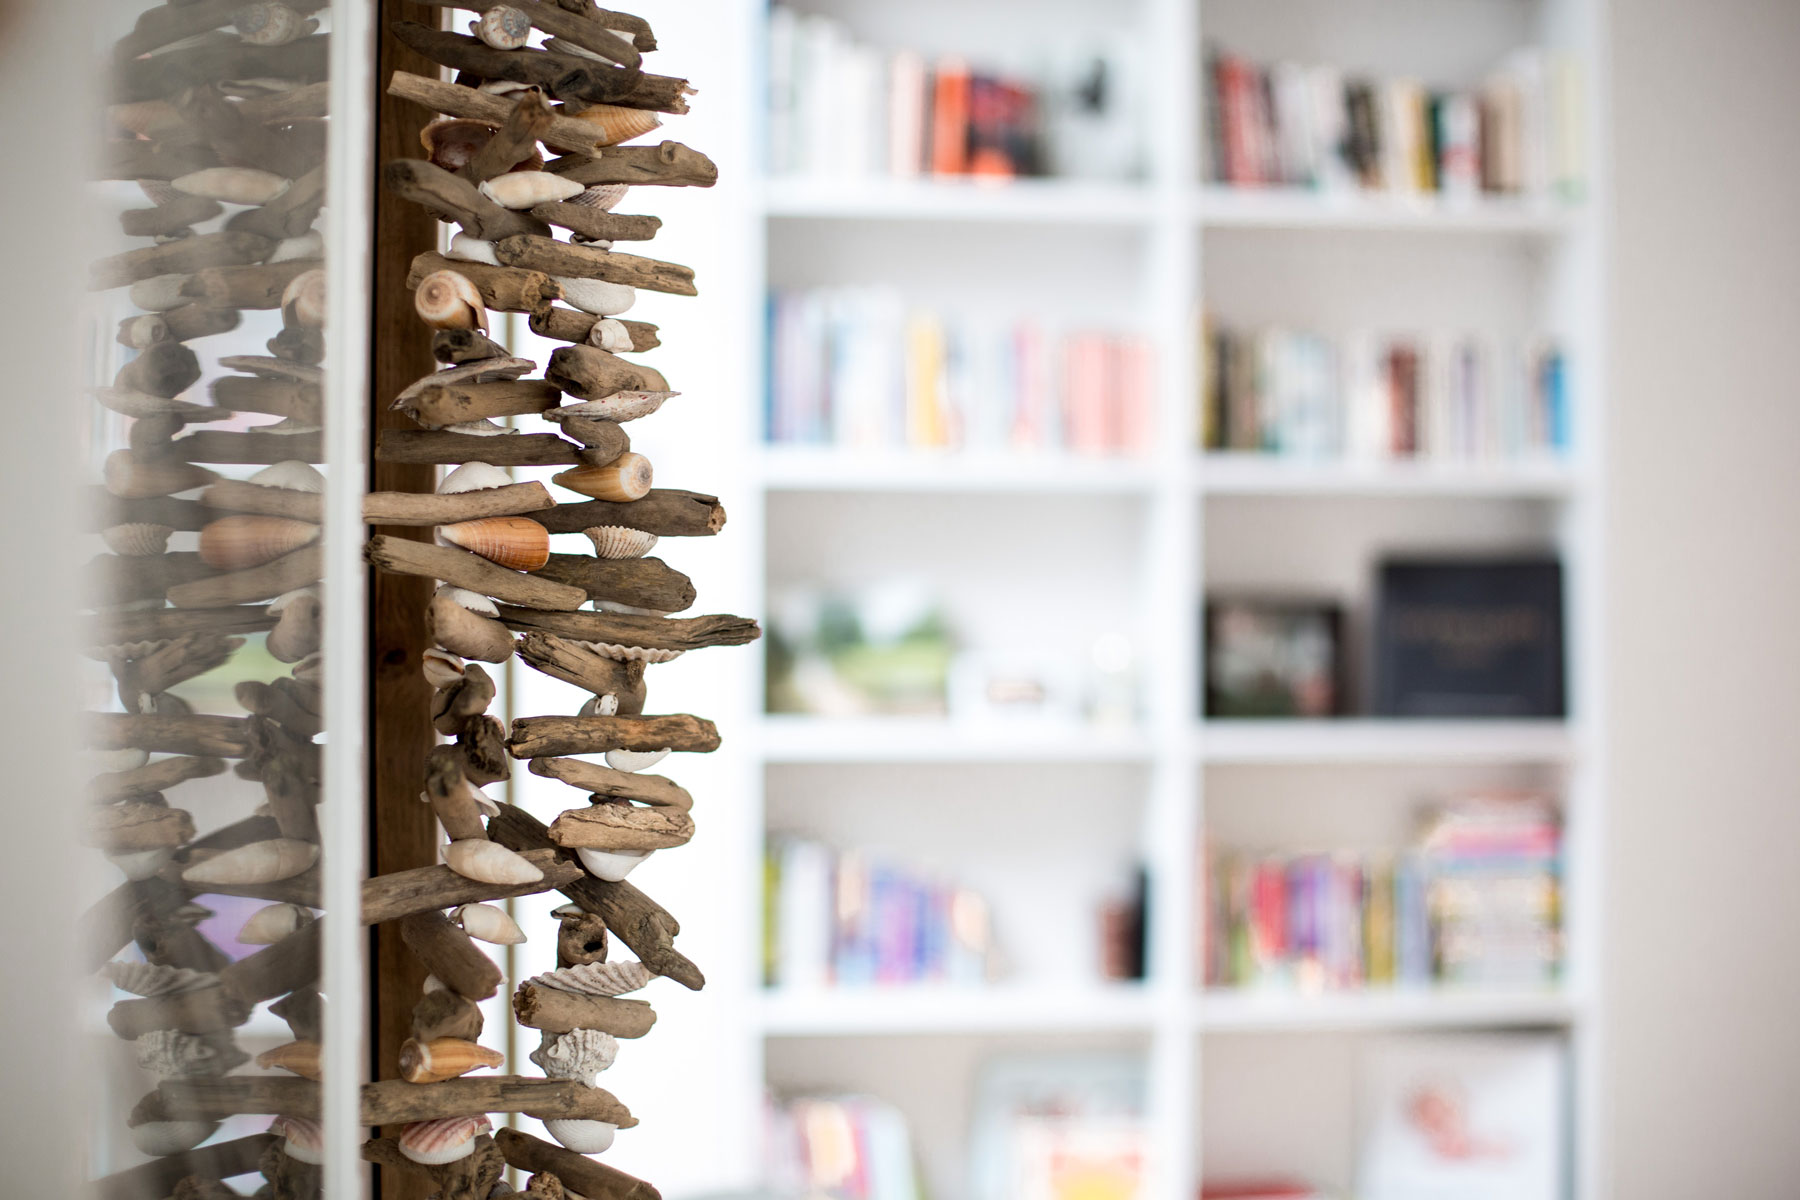 Corinna decorations and bookshelf - after